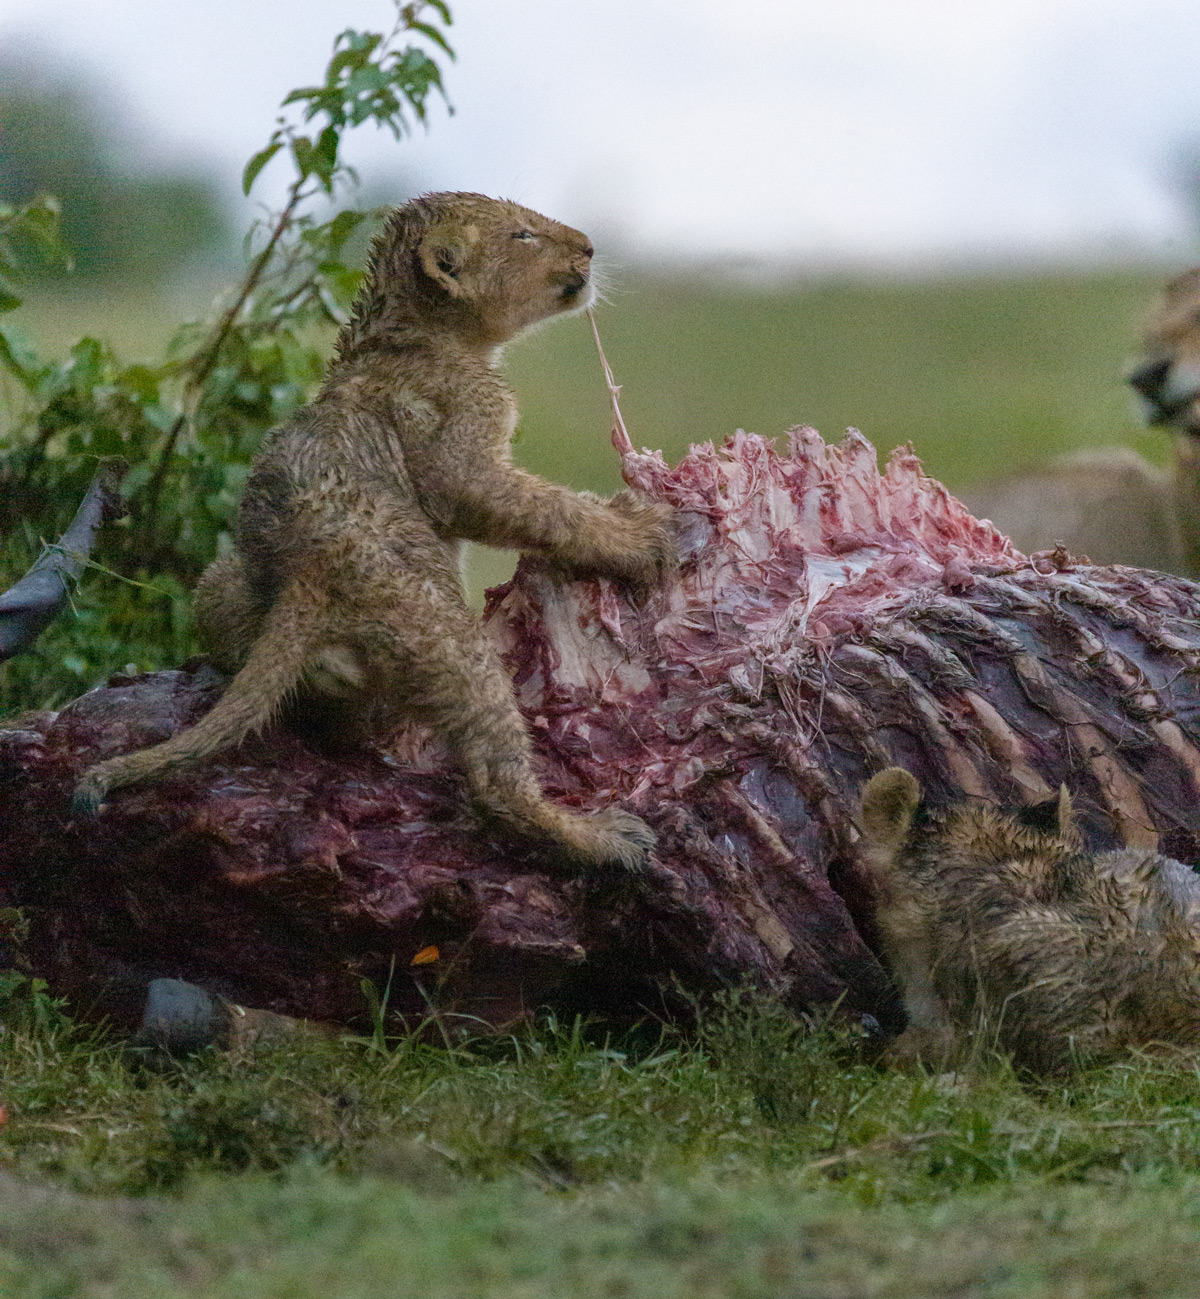 Two lion cubs have a field day eating a kudu carcass without any disturbance while the rest of the pride relaxes after already gorging themselves, Maasai Mara National Reserve, Kenya © Ruzdi Ekenheim (Instagram/ruek66)